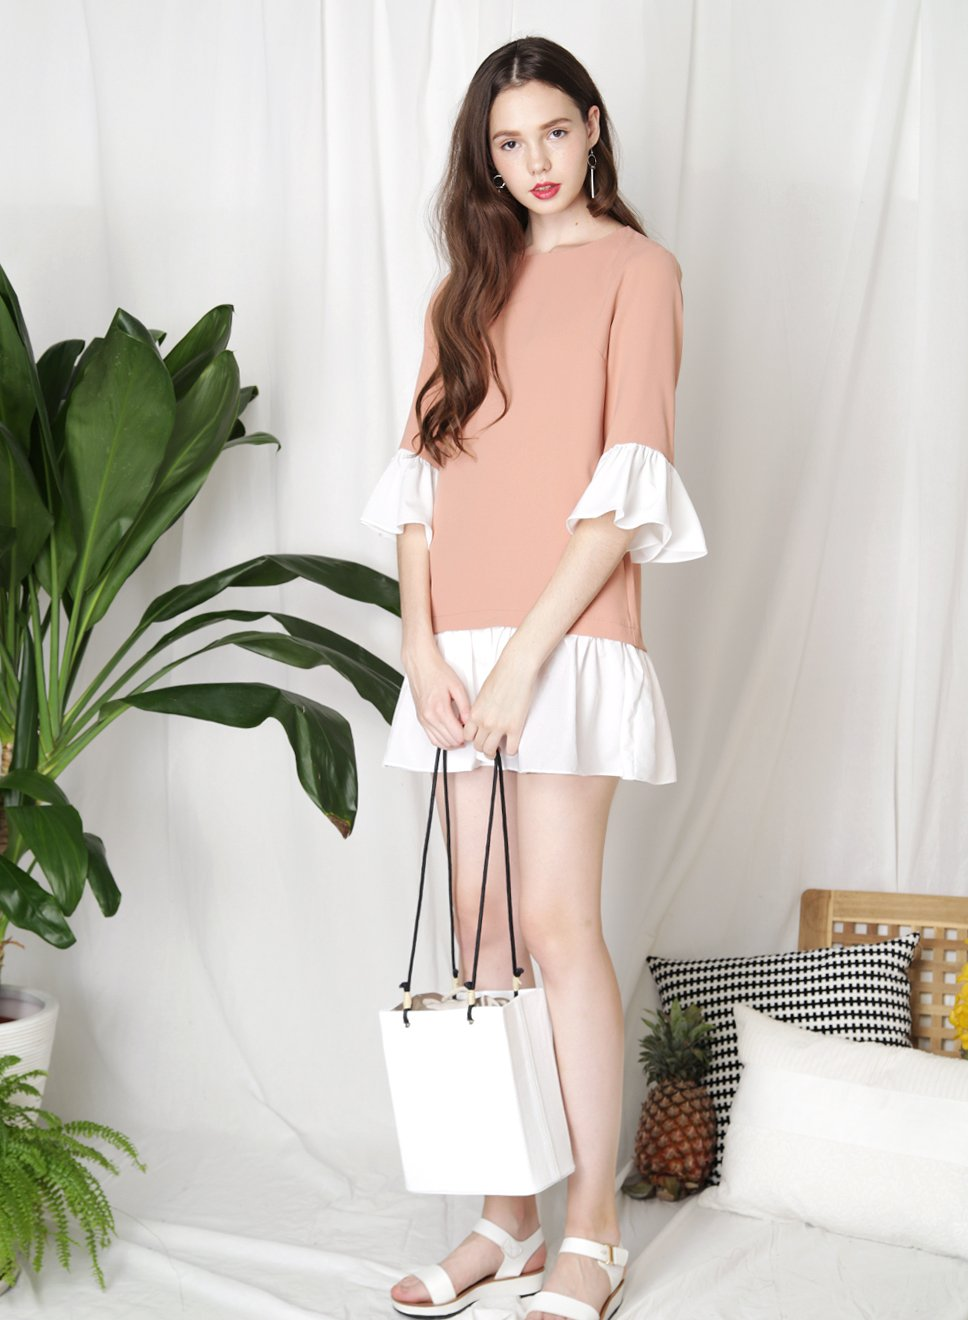 MOMENTUM Contrast Ruffle Dress (Apricot) at $ 29.00 only sold at And Well Dressed Online Fashion Store Singapore